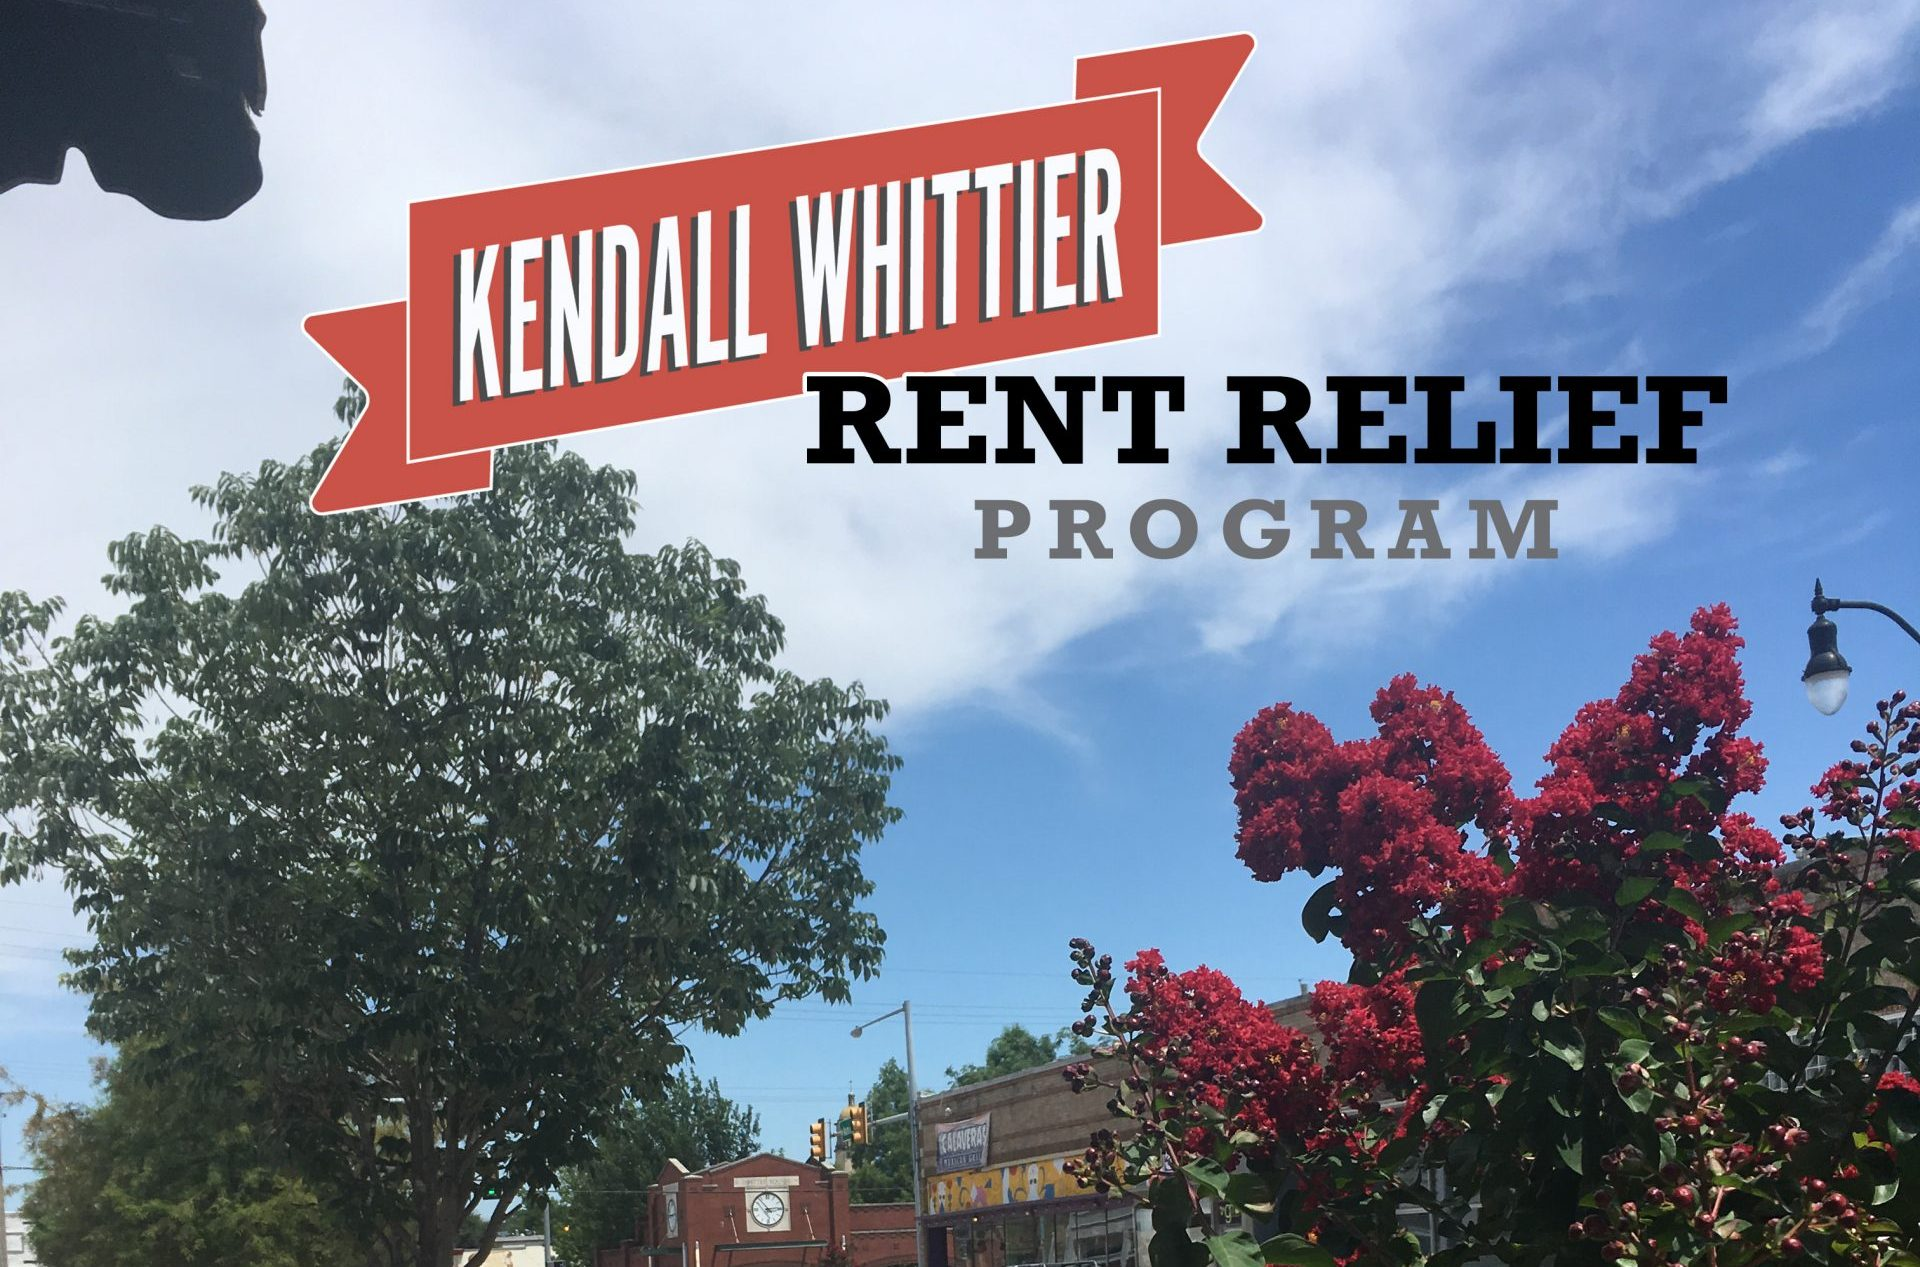 National grant funds local business rent in Kendall Whittier